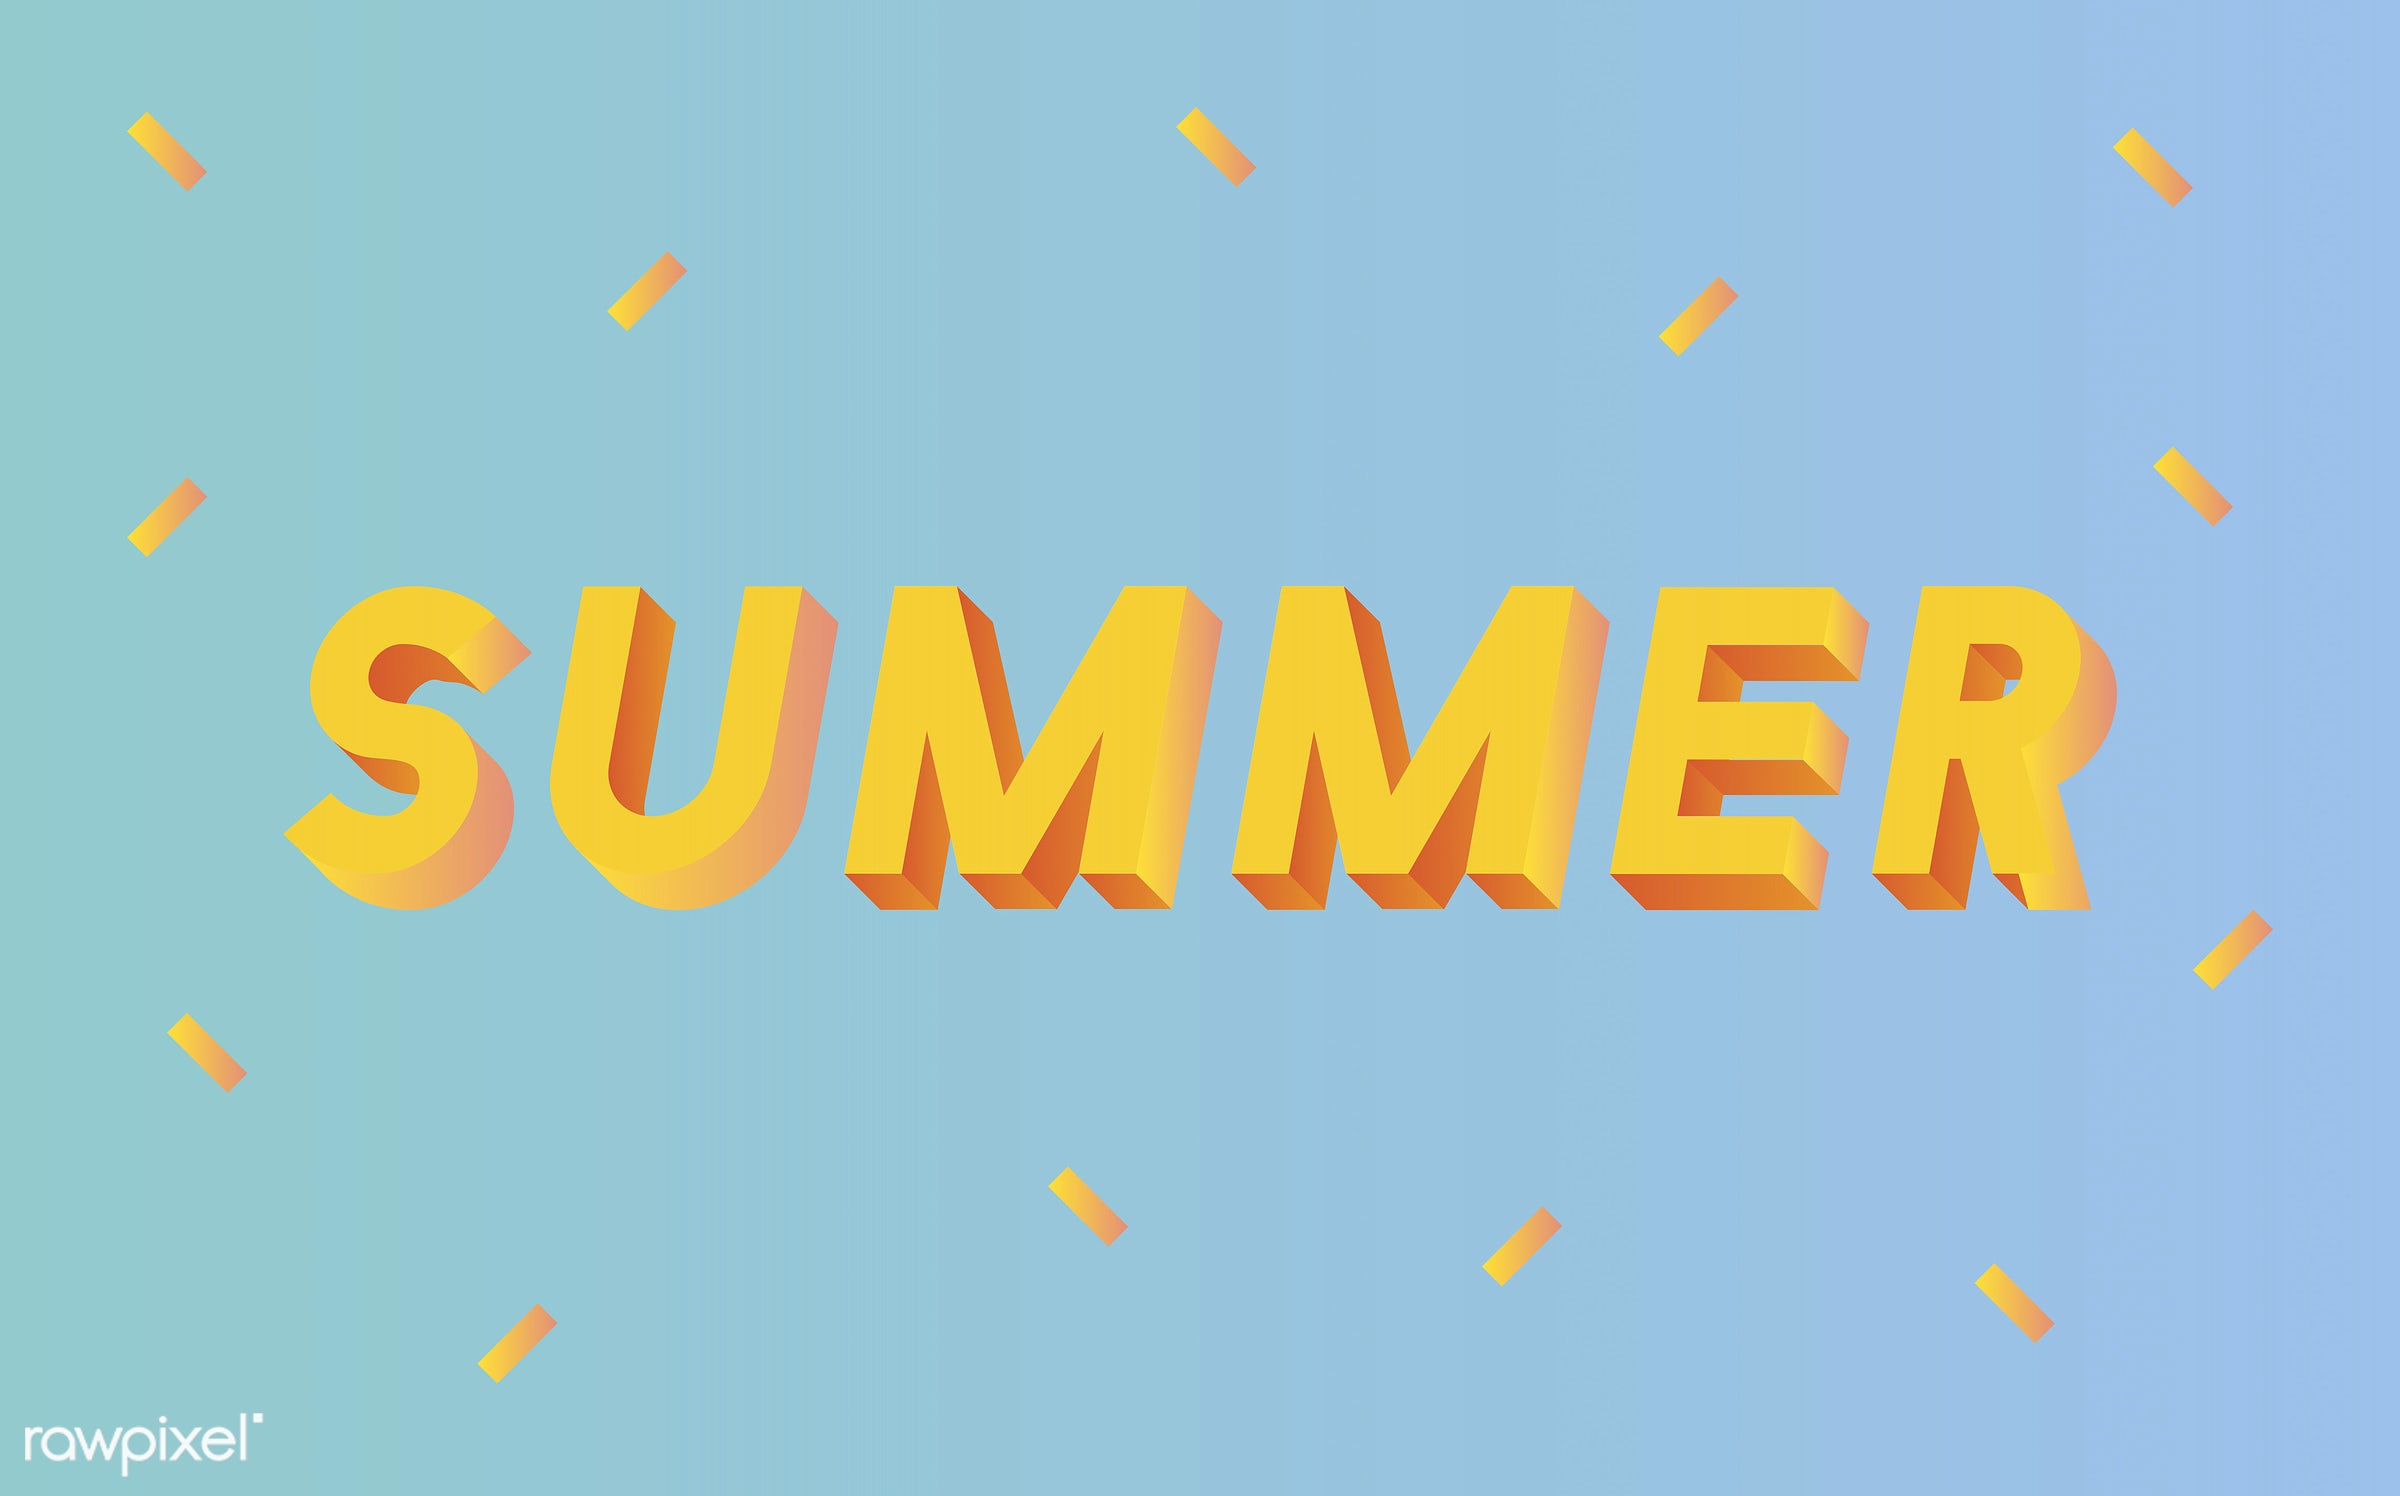 neon, colorful, 3d, three dimensional, vector, illustration, graphic, word, blue, yellow, summer